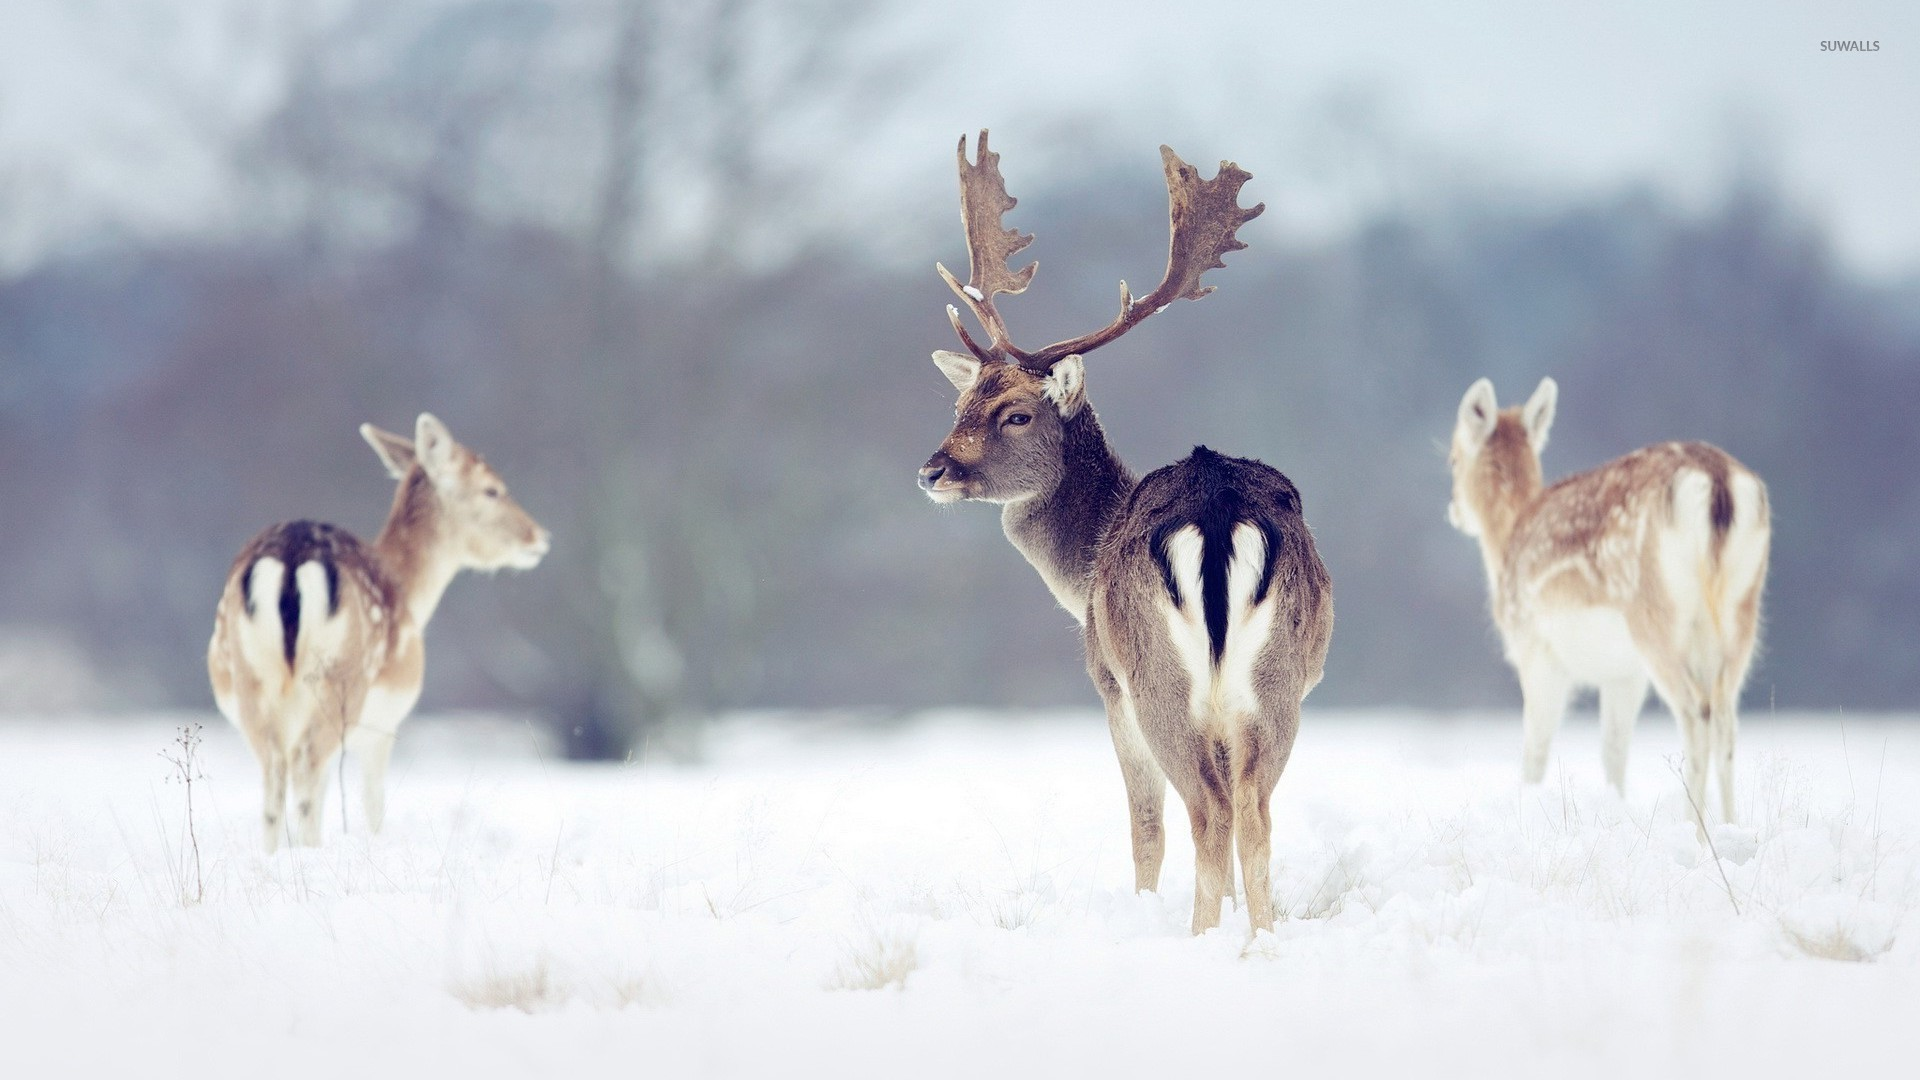 animal deer wallpaper 1920x1080 - photo #46